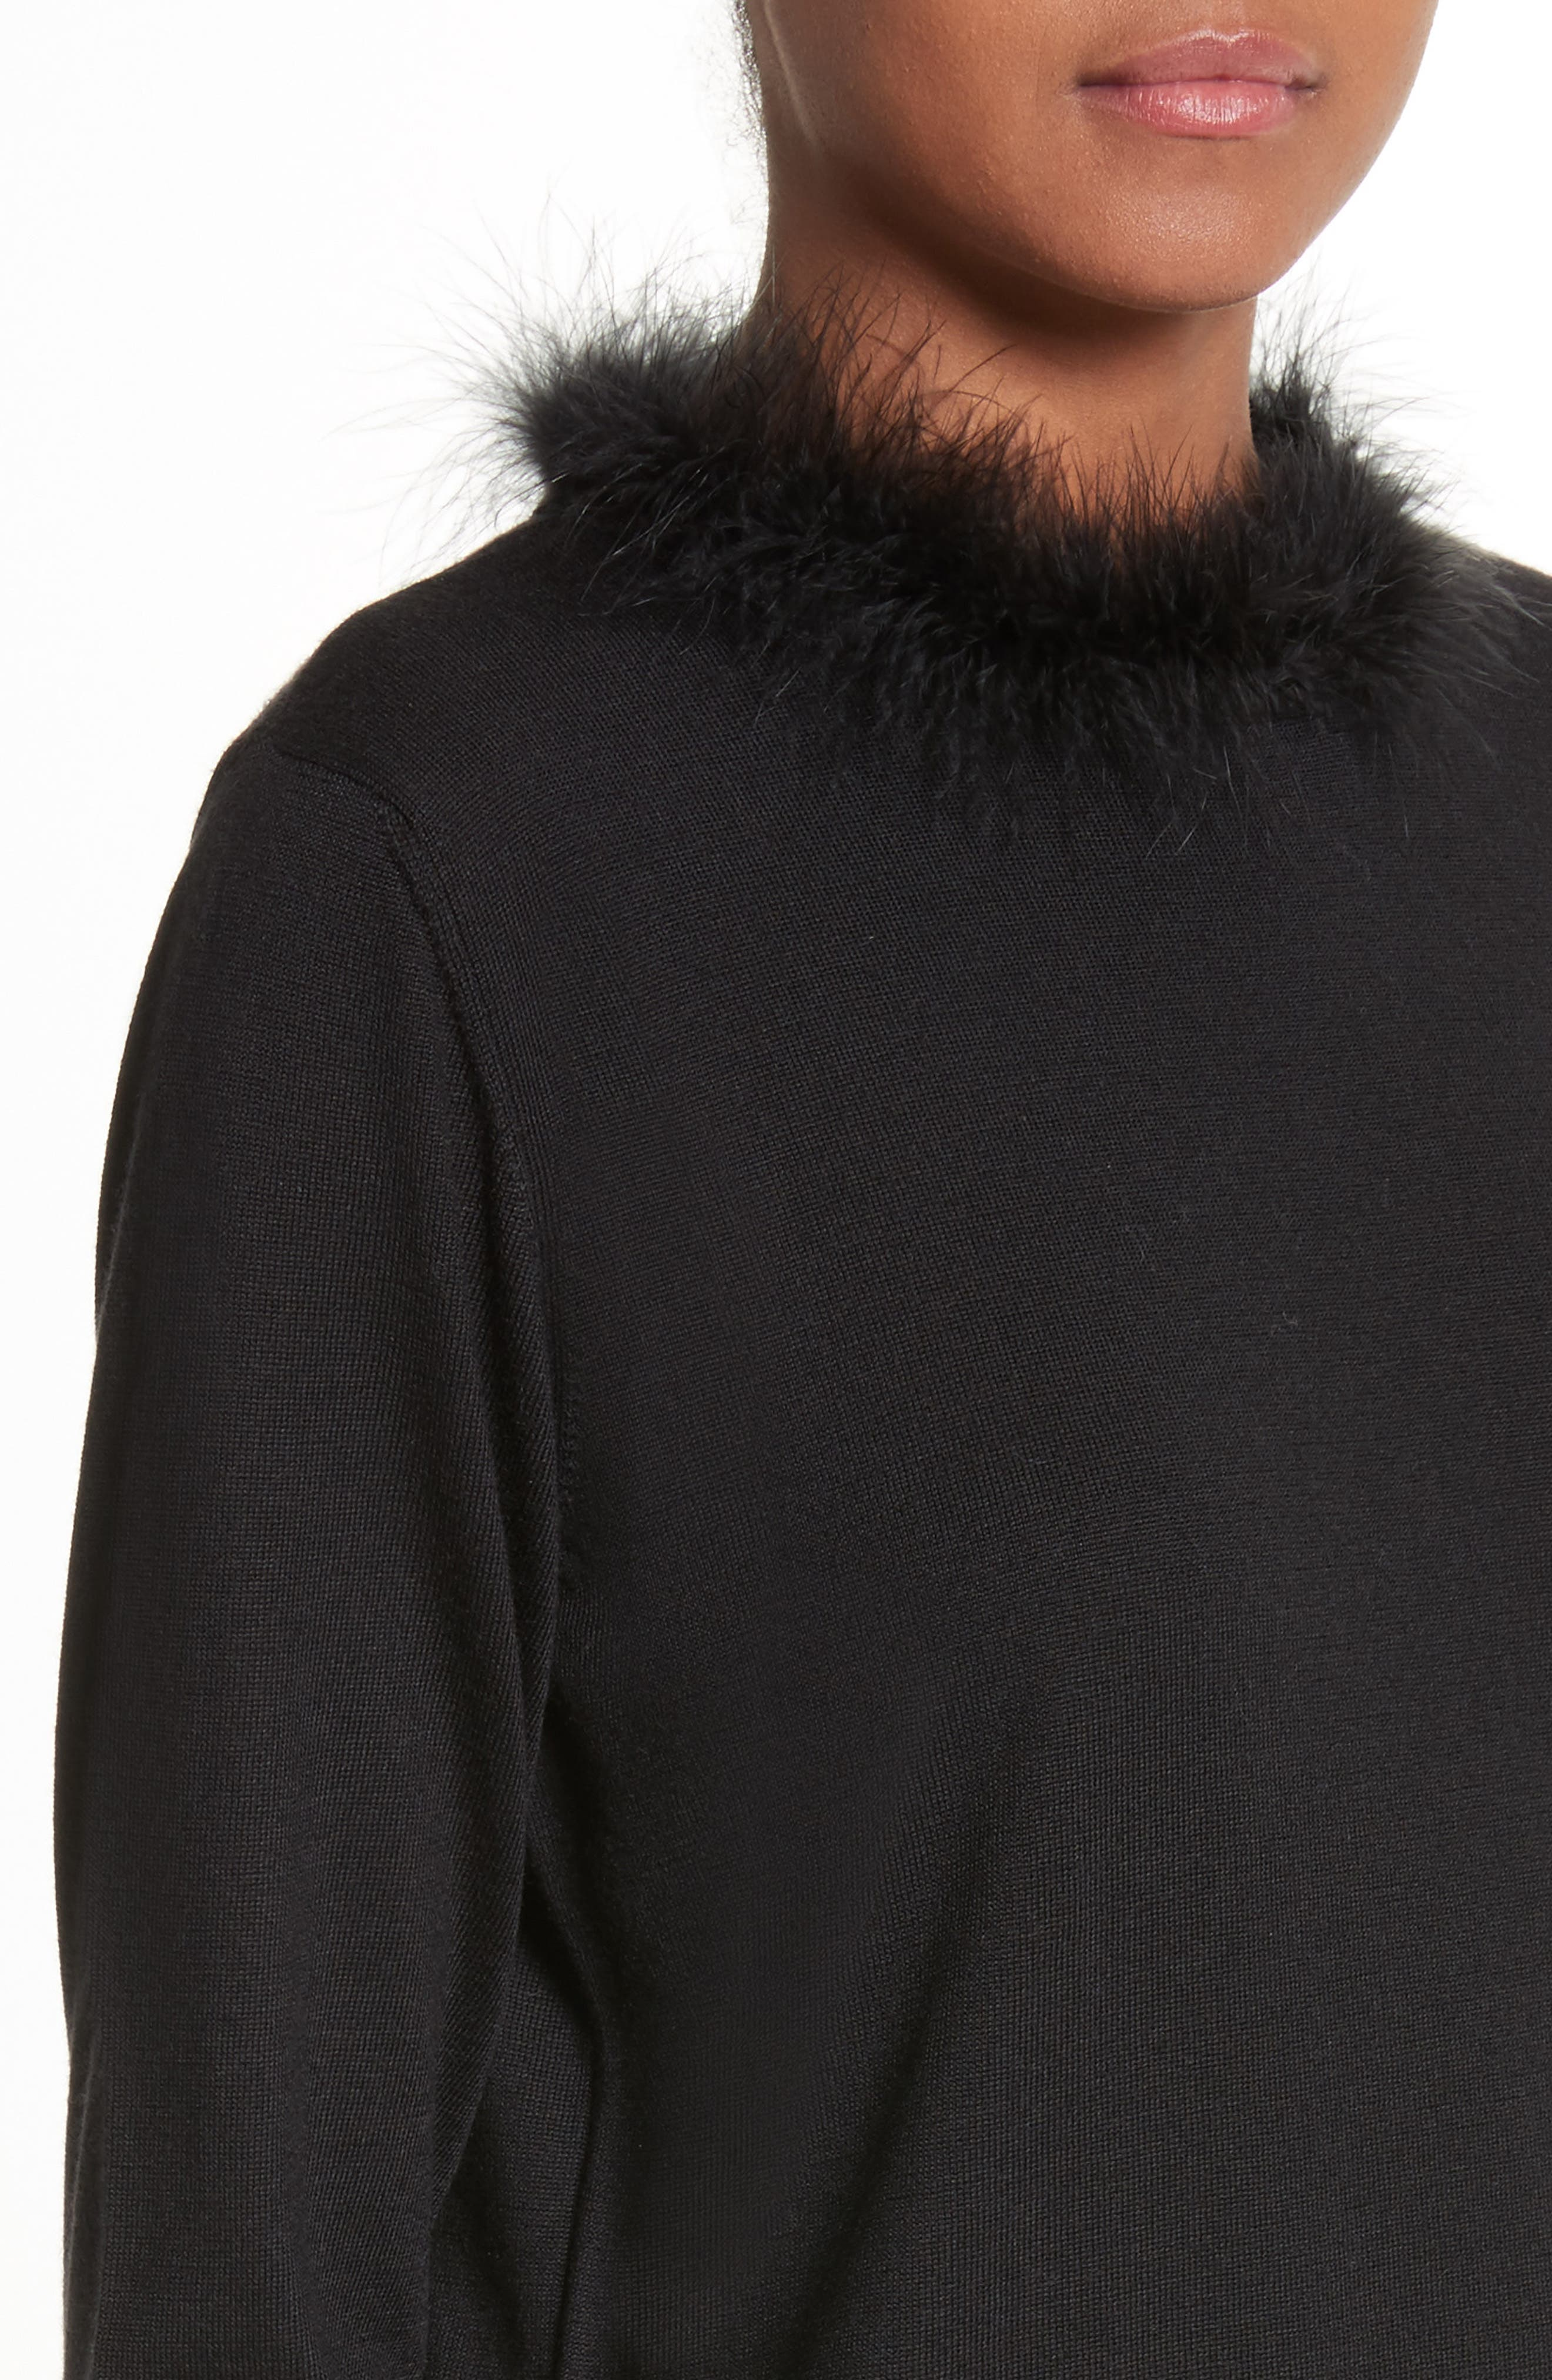 Teddy Open Back Sweater with Feather Trim,                             Alternate thumbnail 4, color,                             001